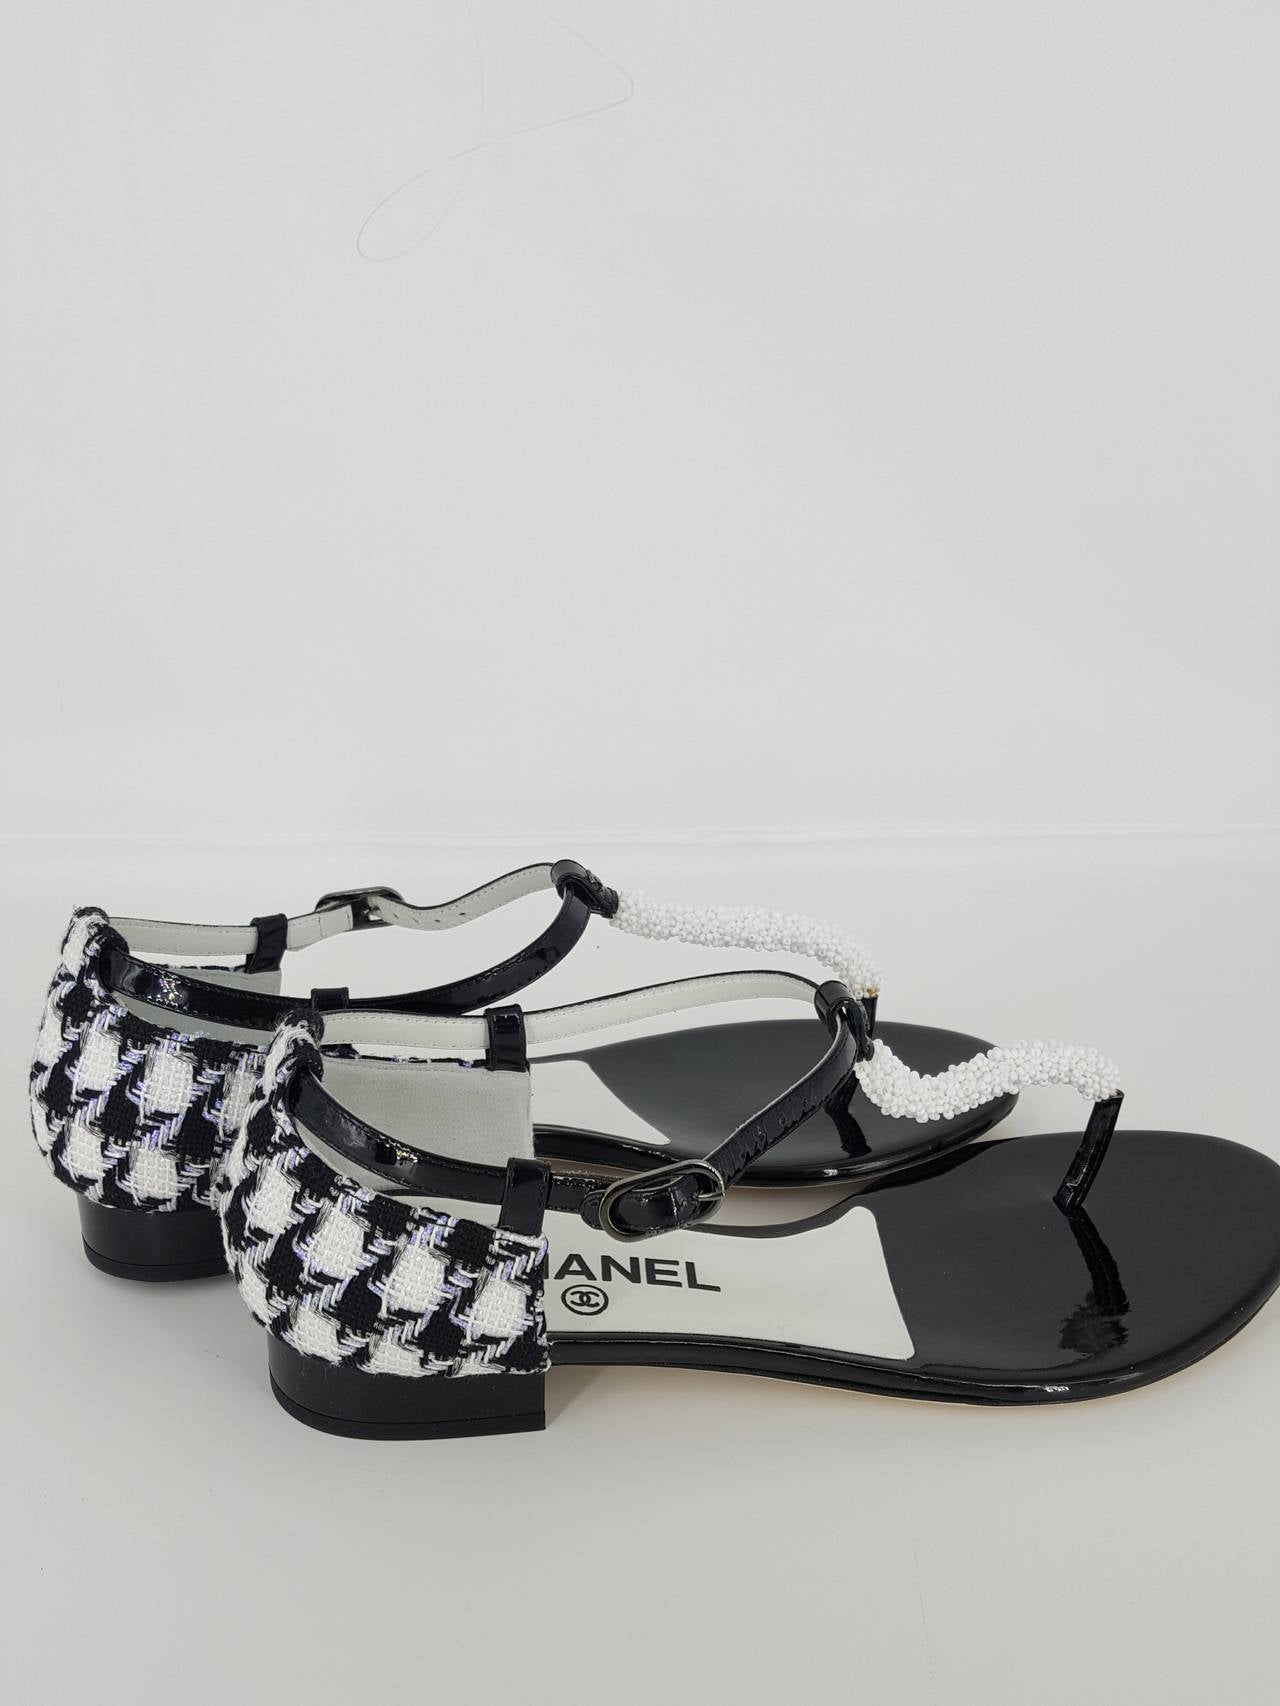 chanel black and white patent leather and boucle sandals